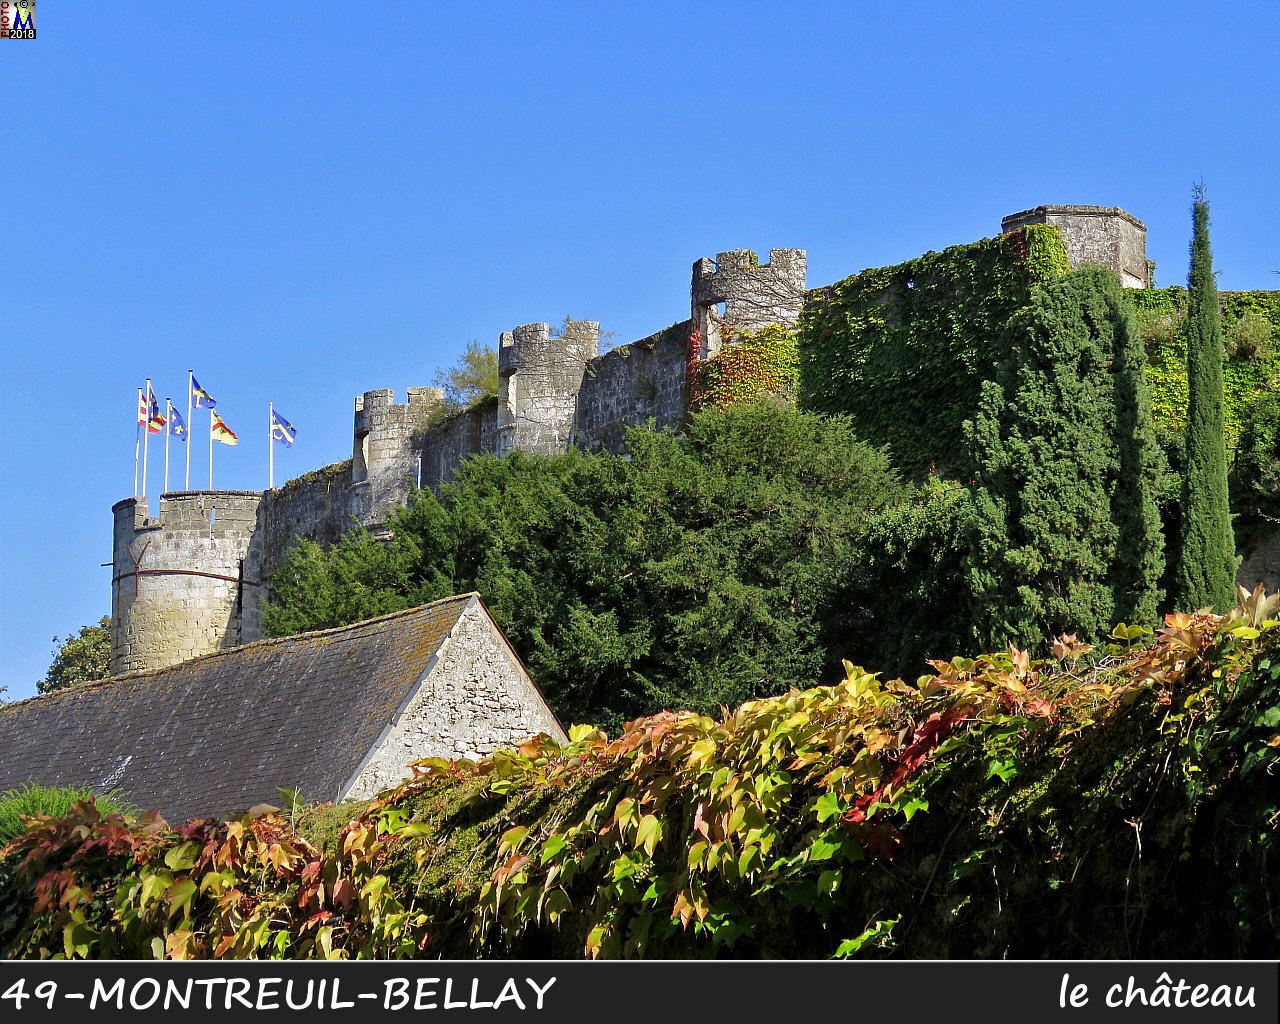 49MONTREUIL-BELLAY_chateau_1068.jpg